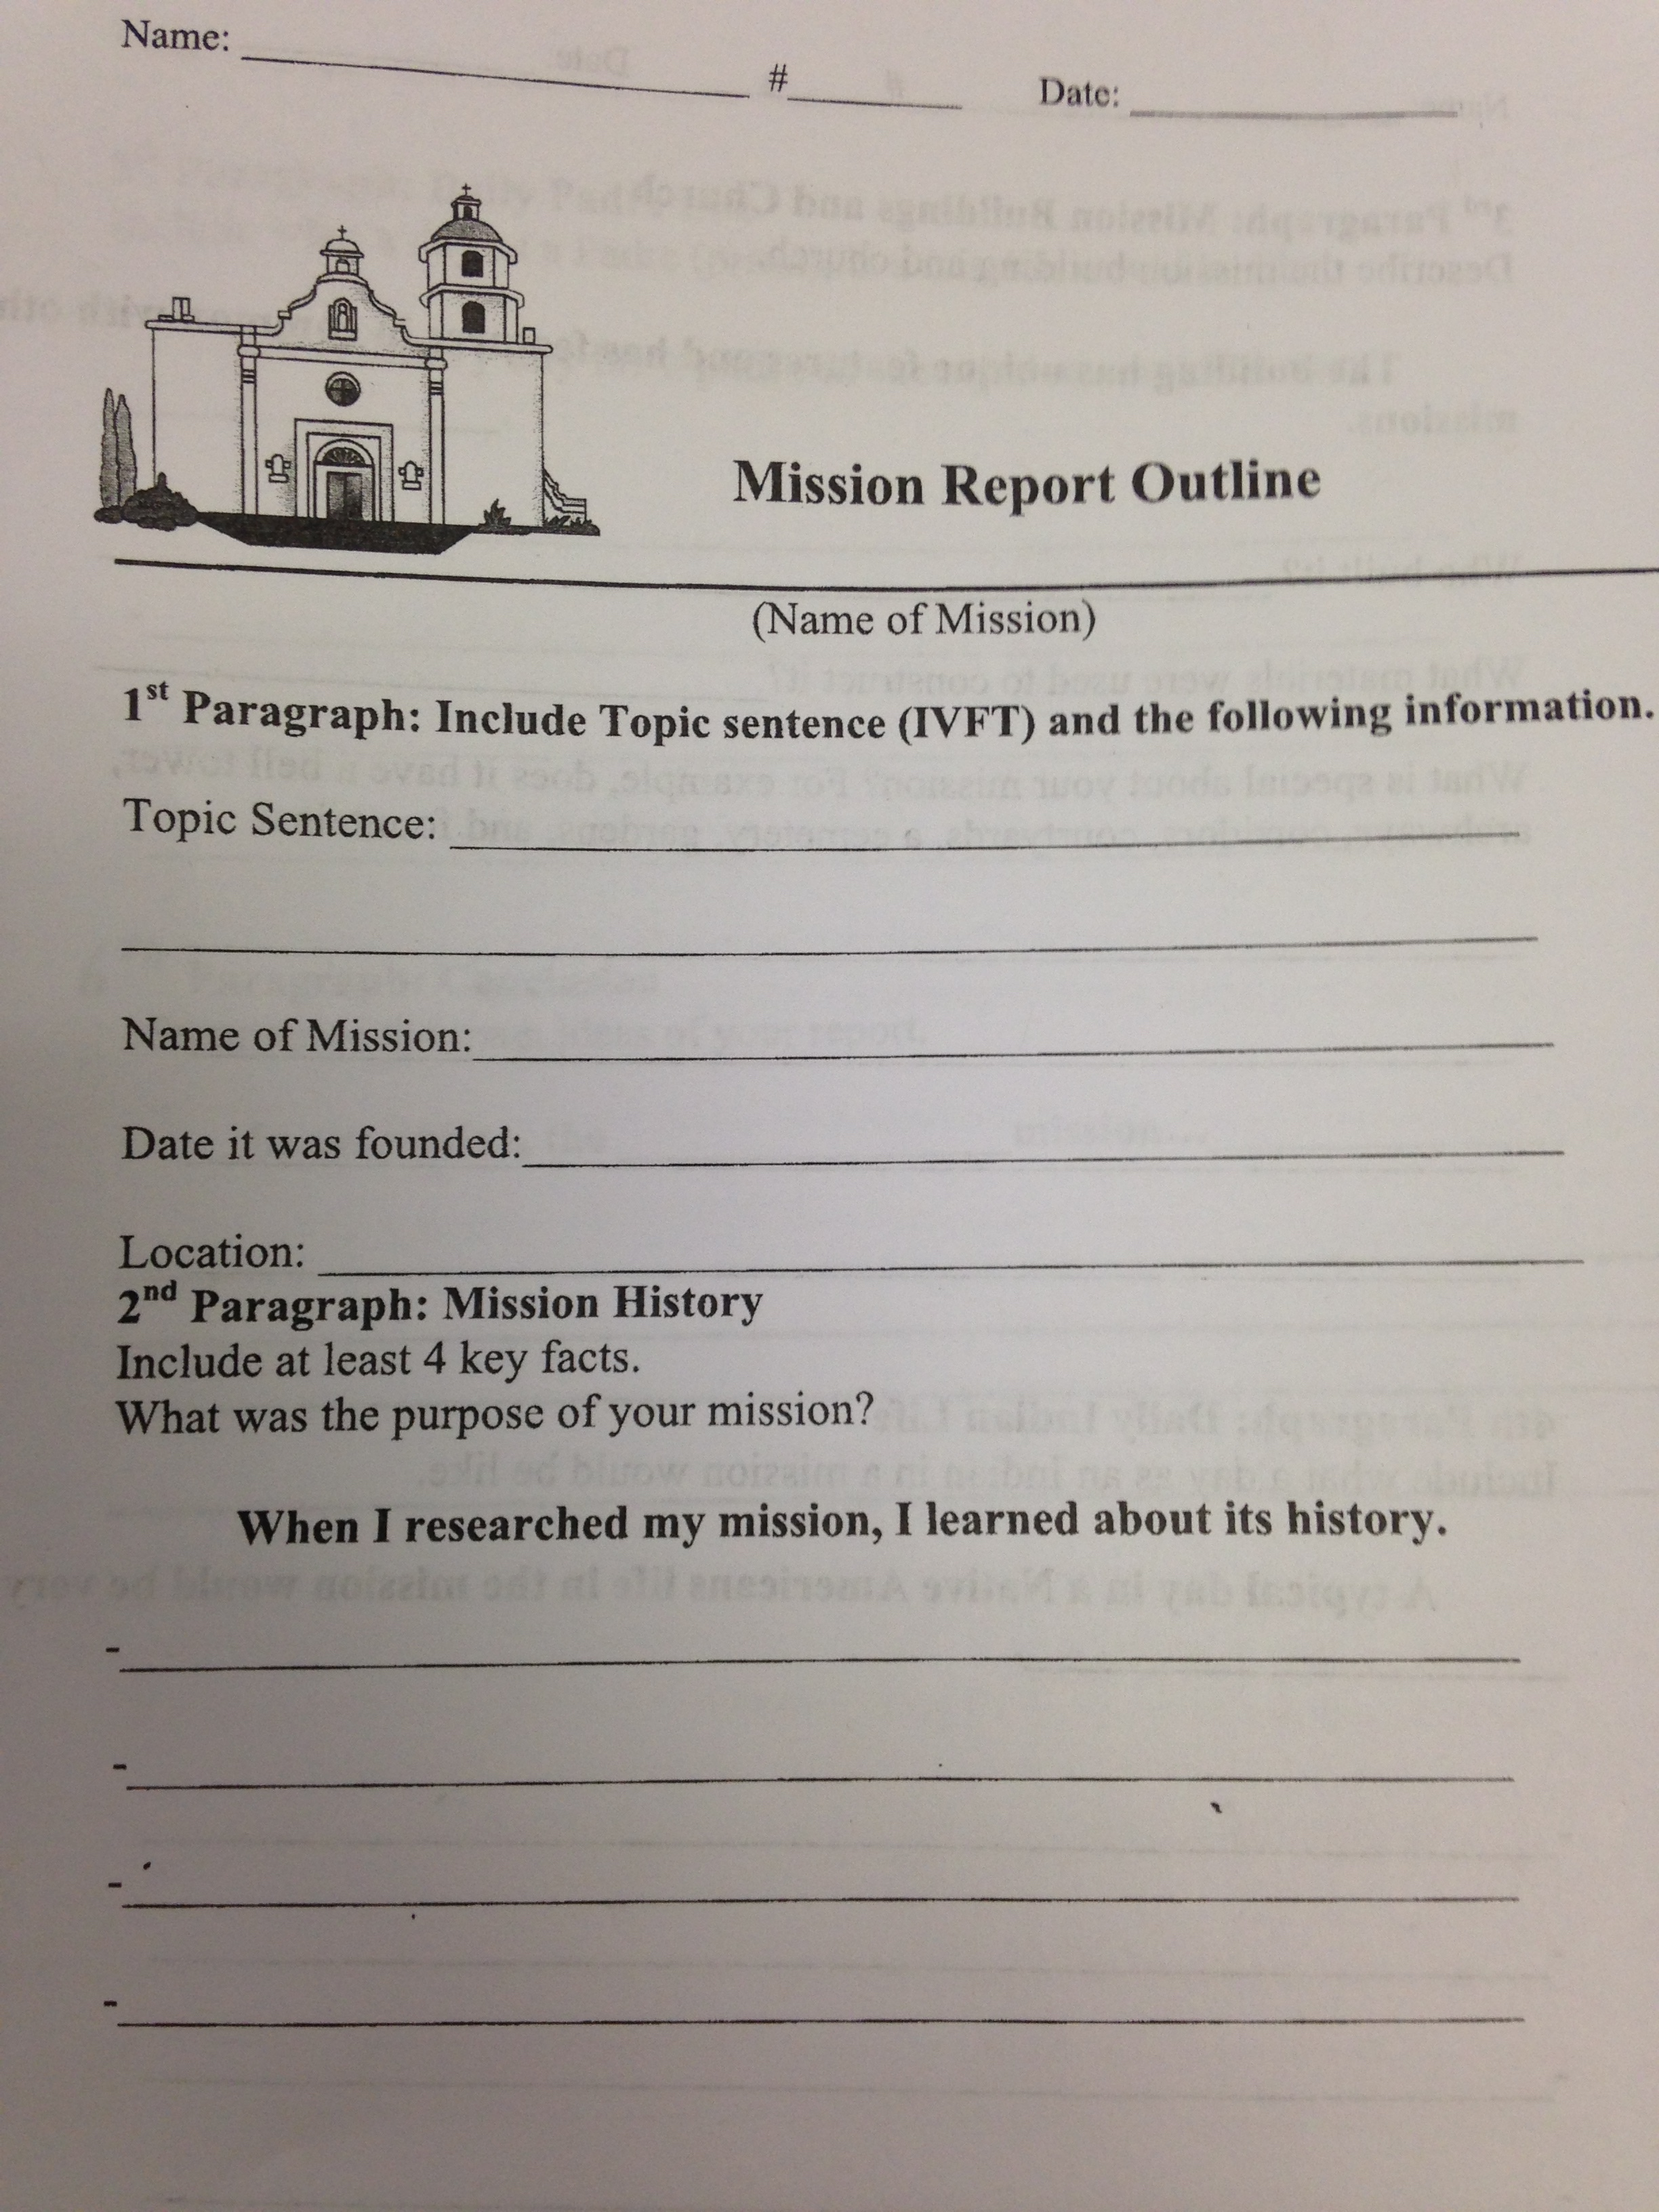 California Mission Report Outline